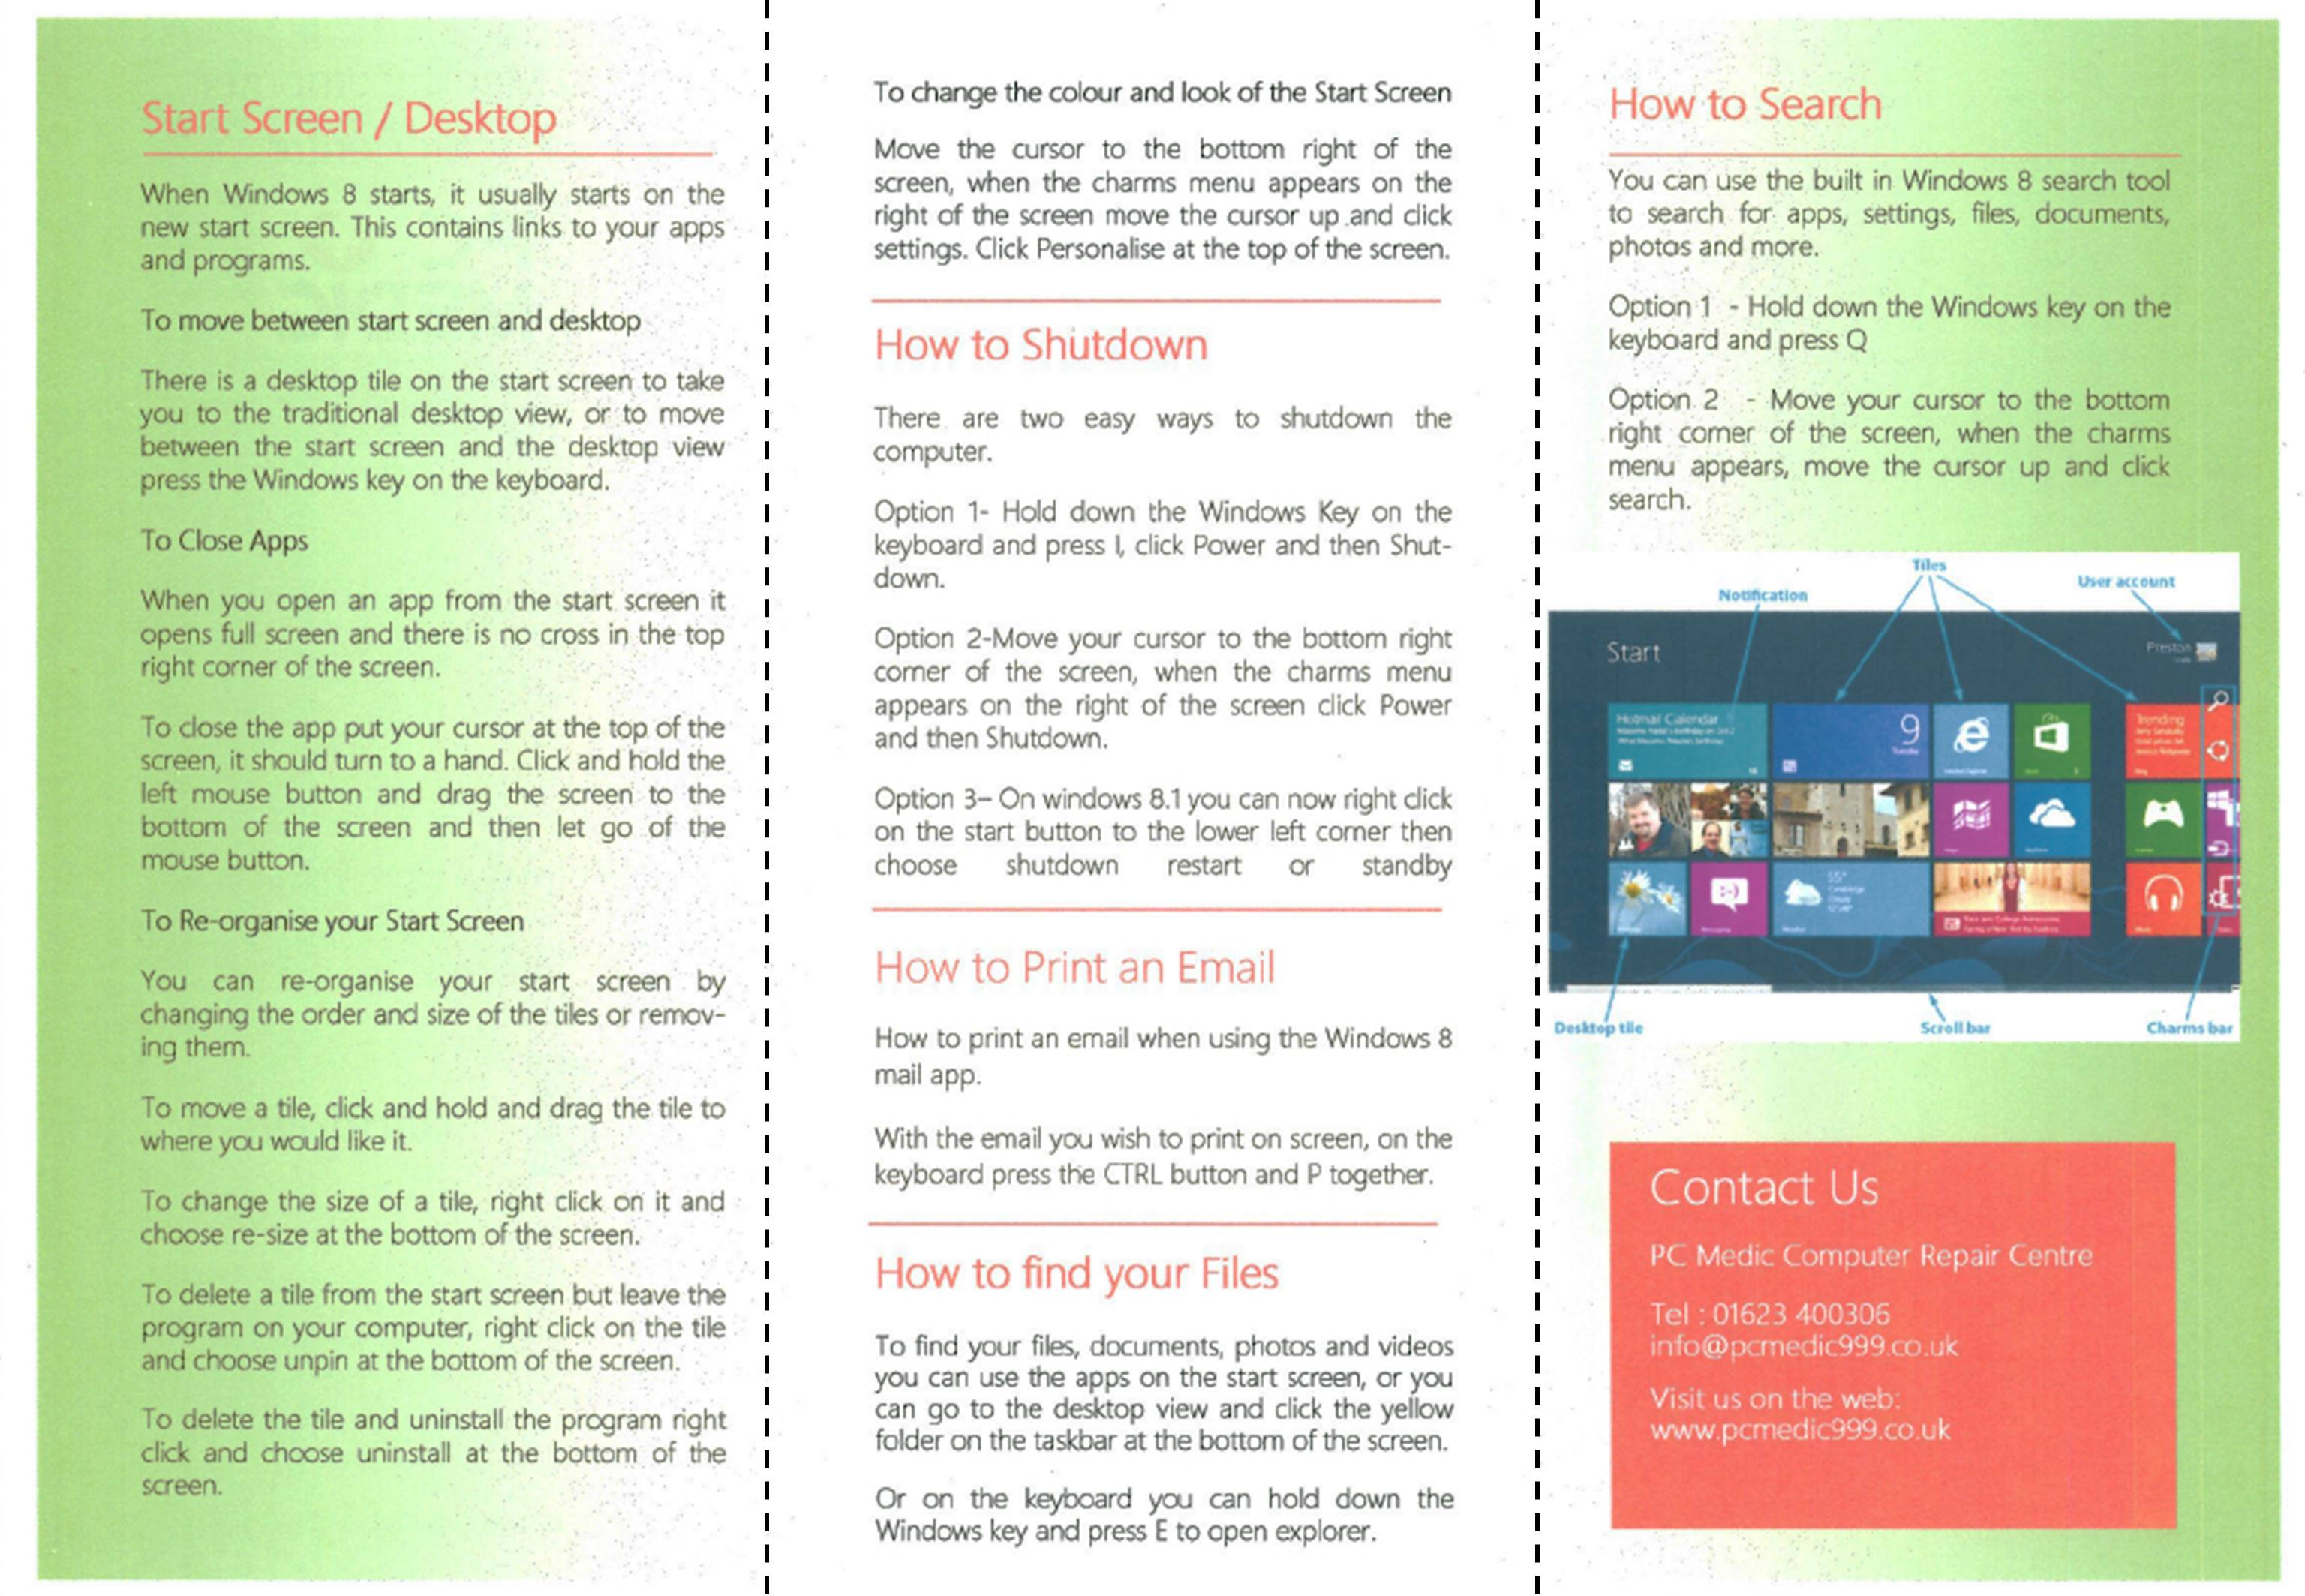 Windows 8 - the perfect reason to give free advice